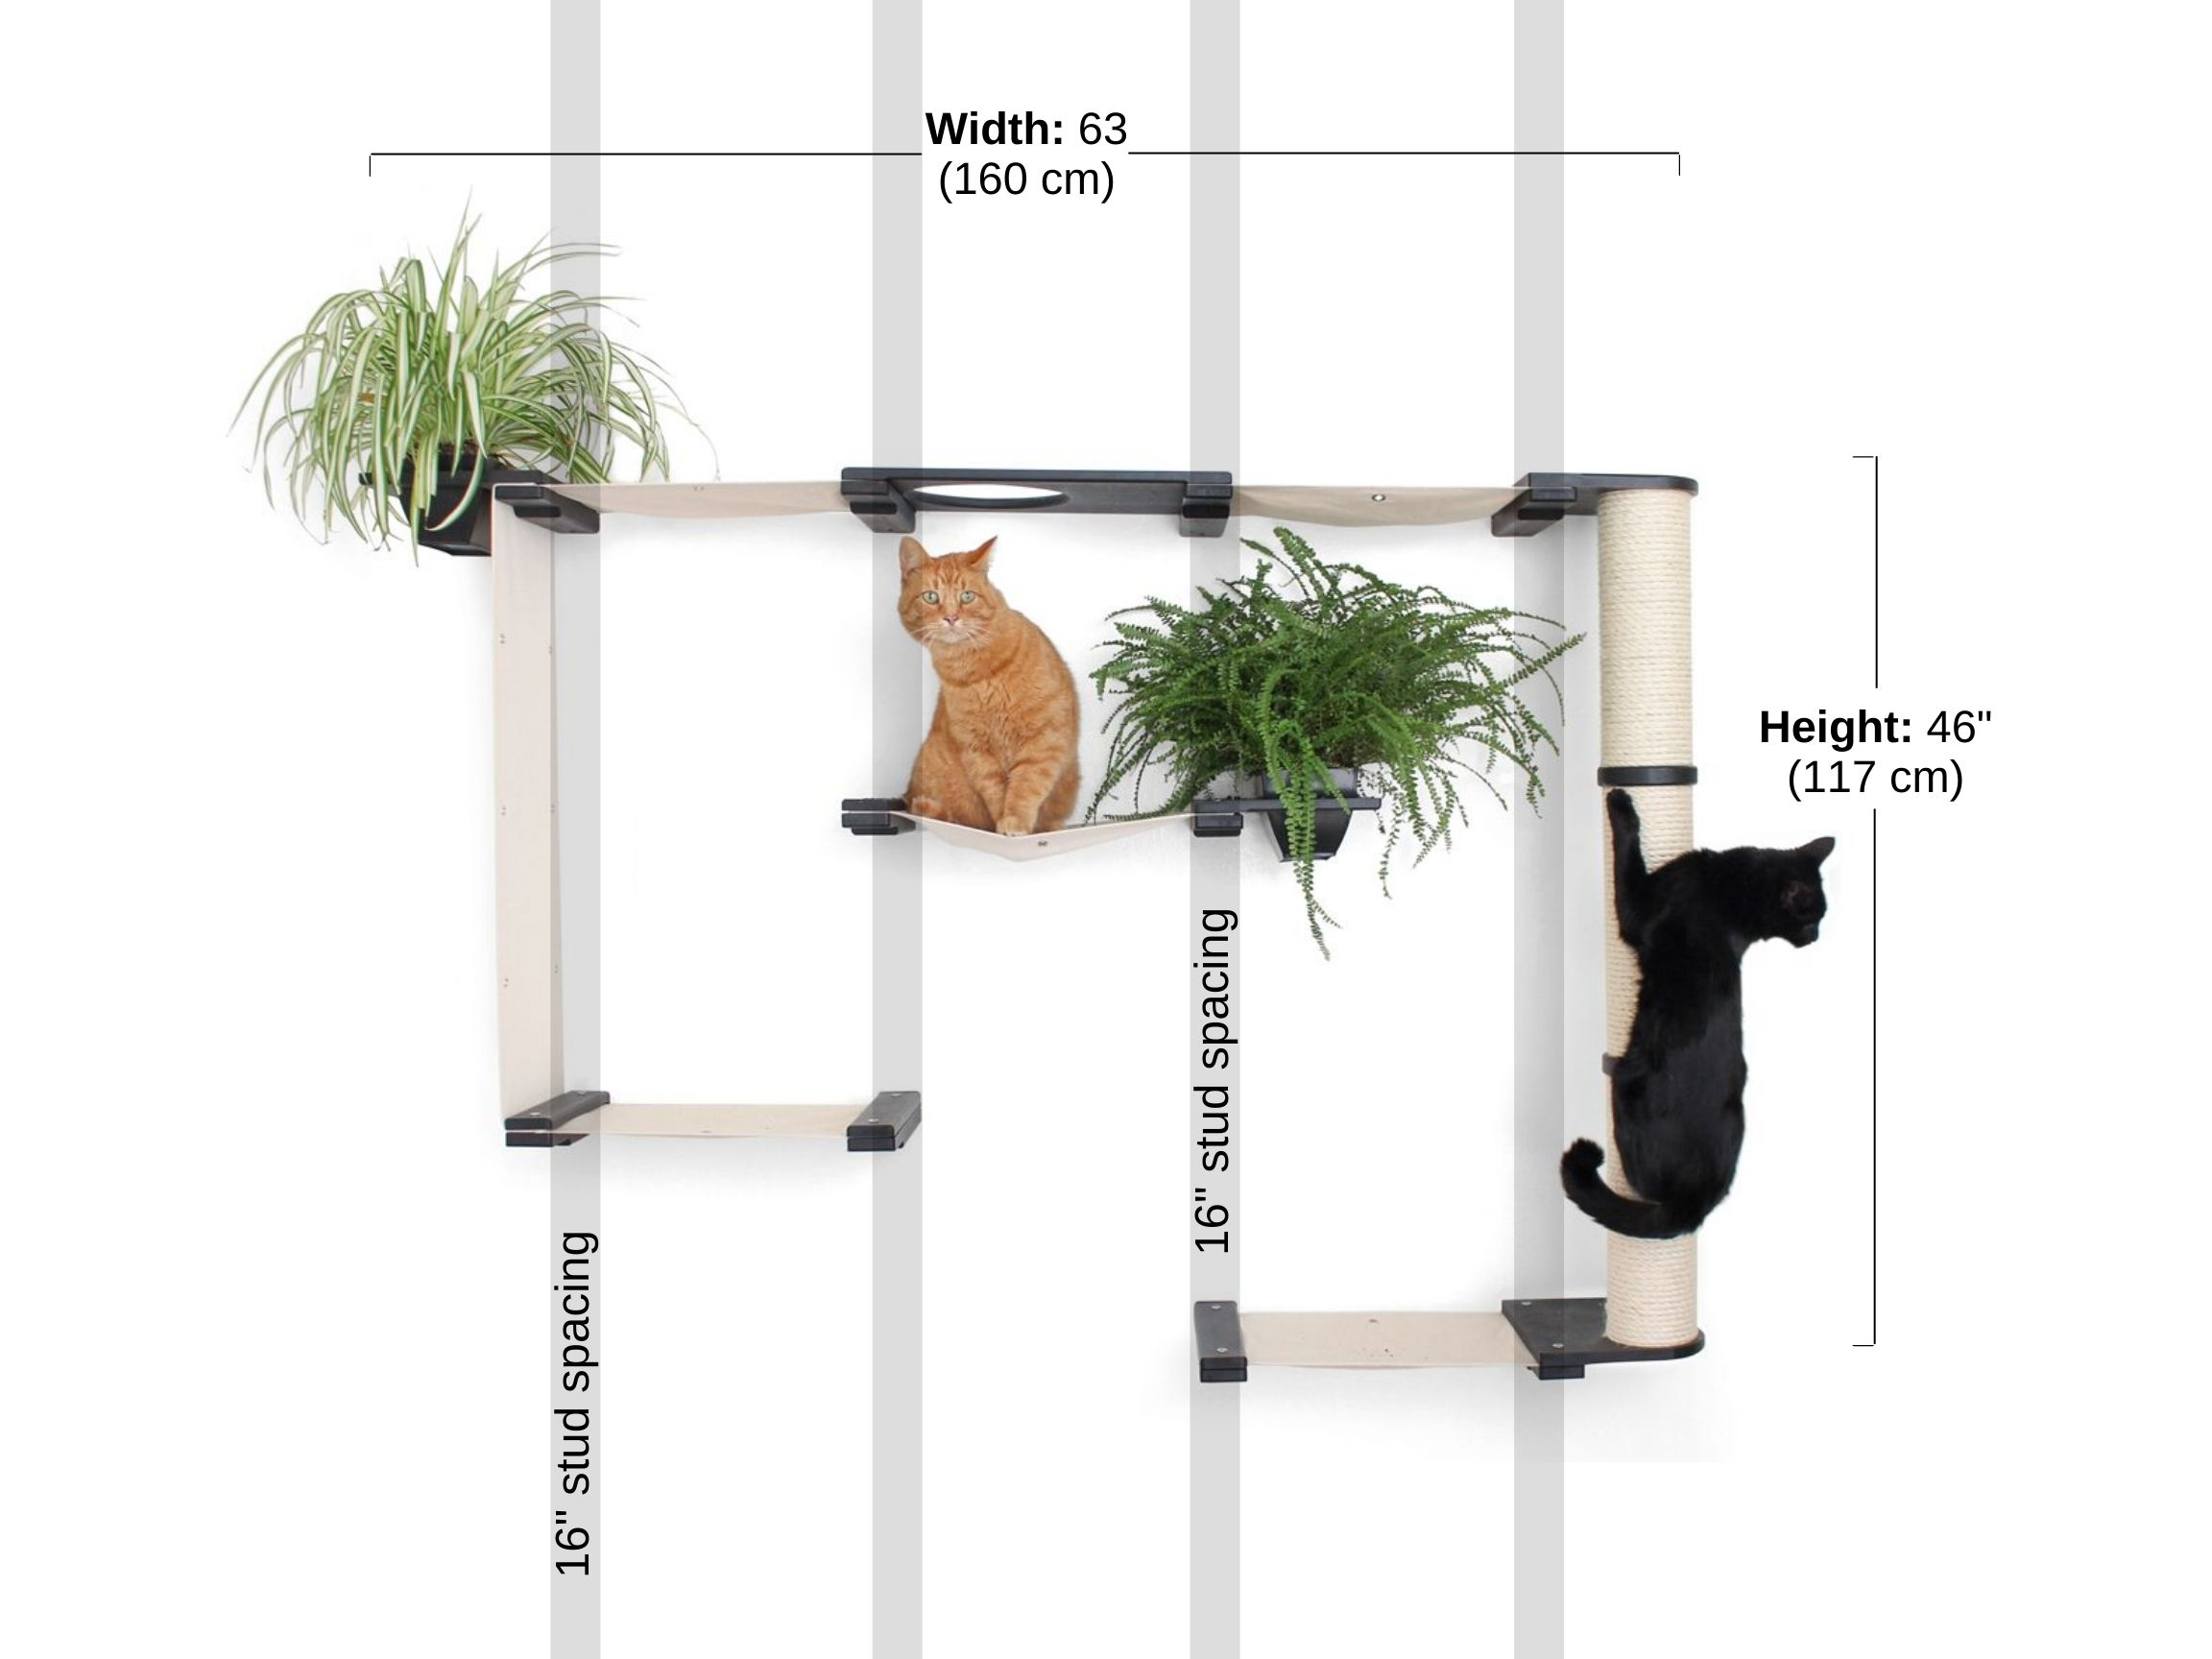 Stud spacing and Dimensions of mini garden